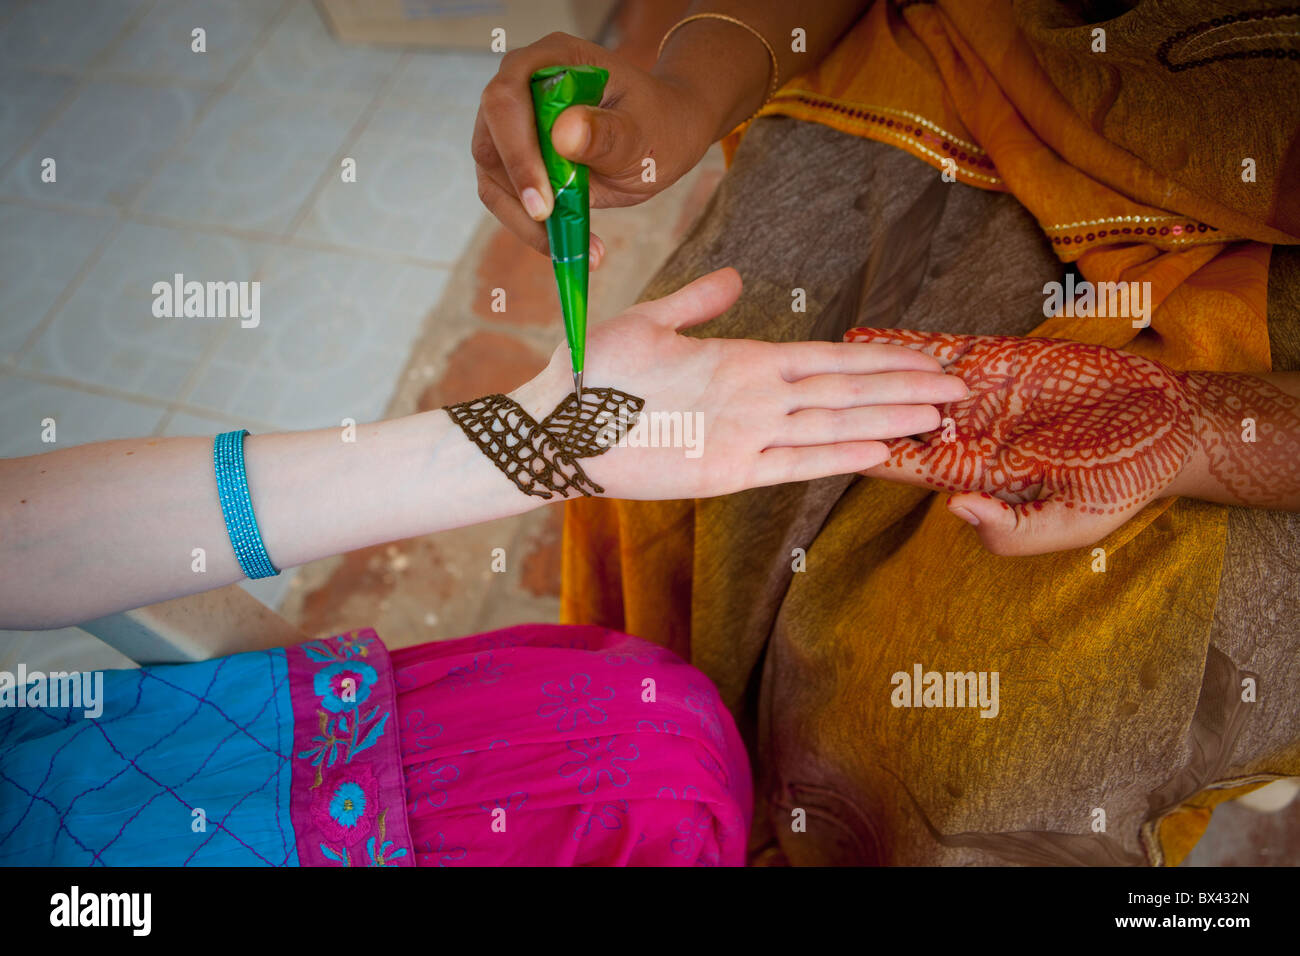 A Woman Doing Henna Painting On Another Woman's Arm; Sathyamangalam, Tamil Nadu, India - Stock Image